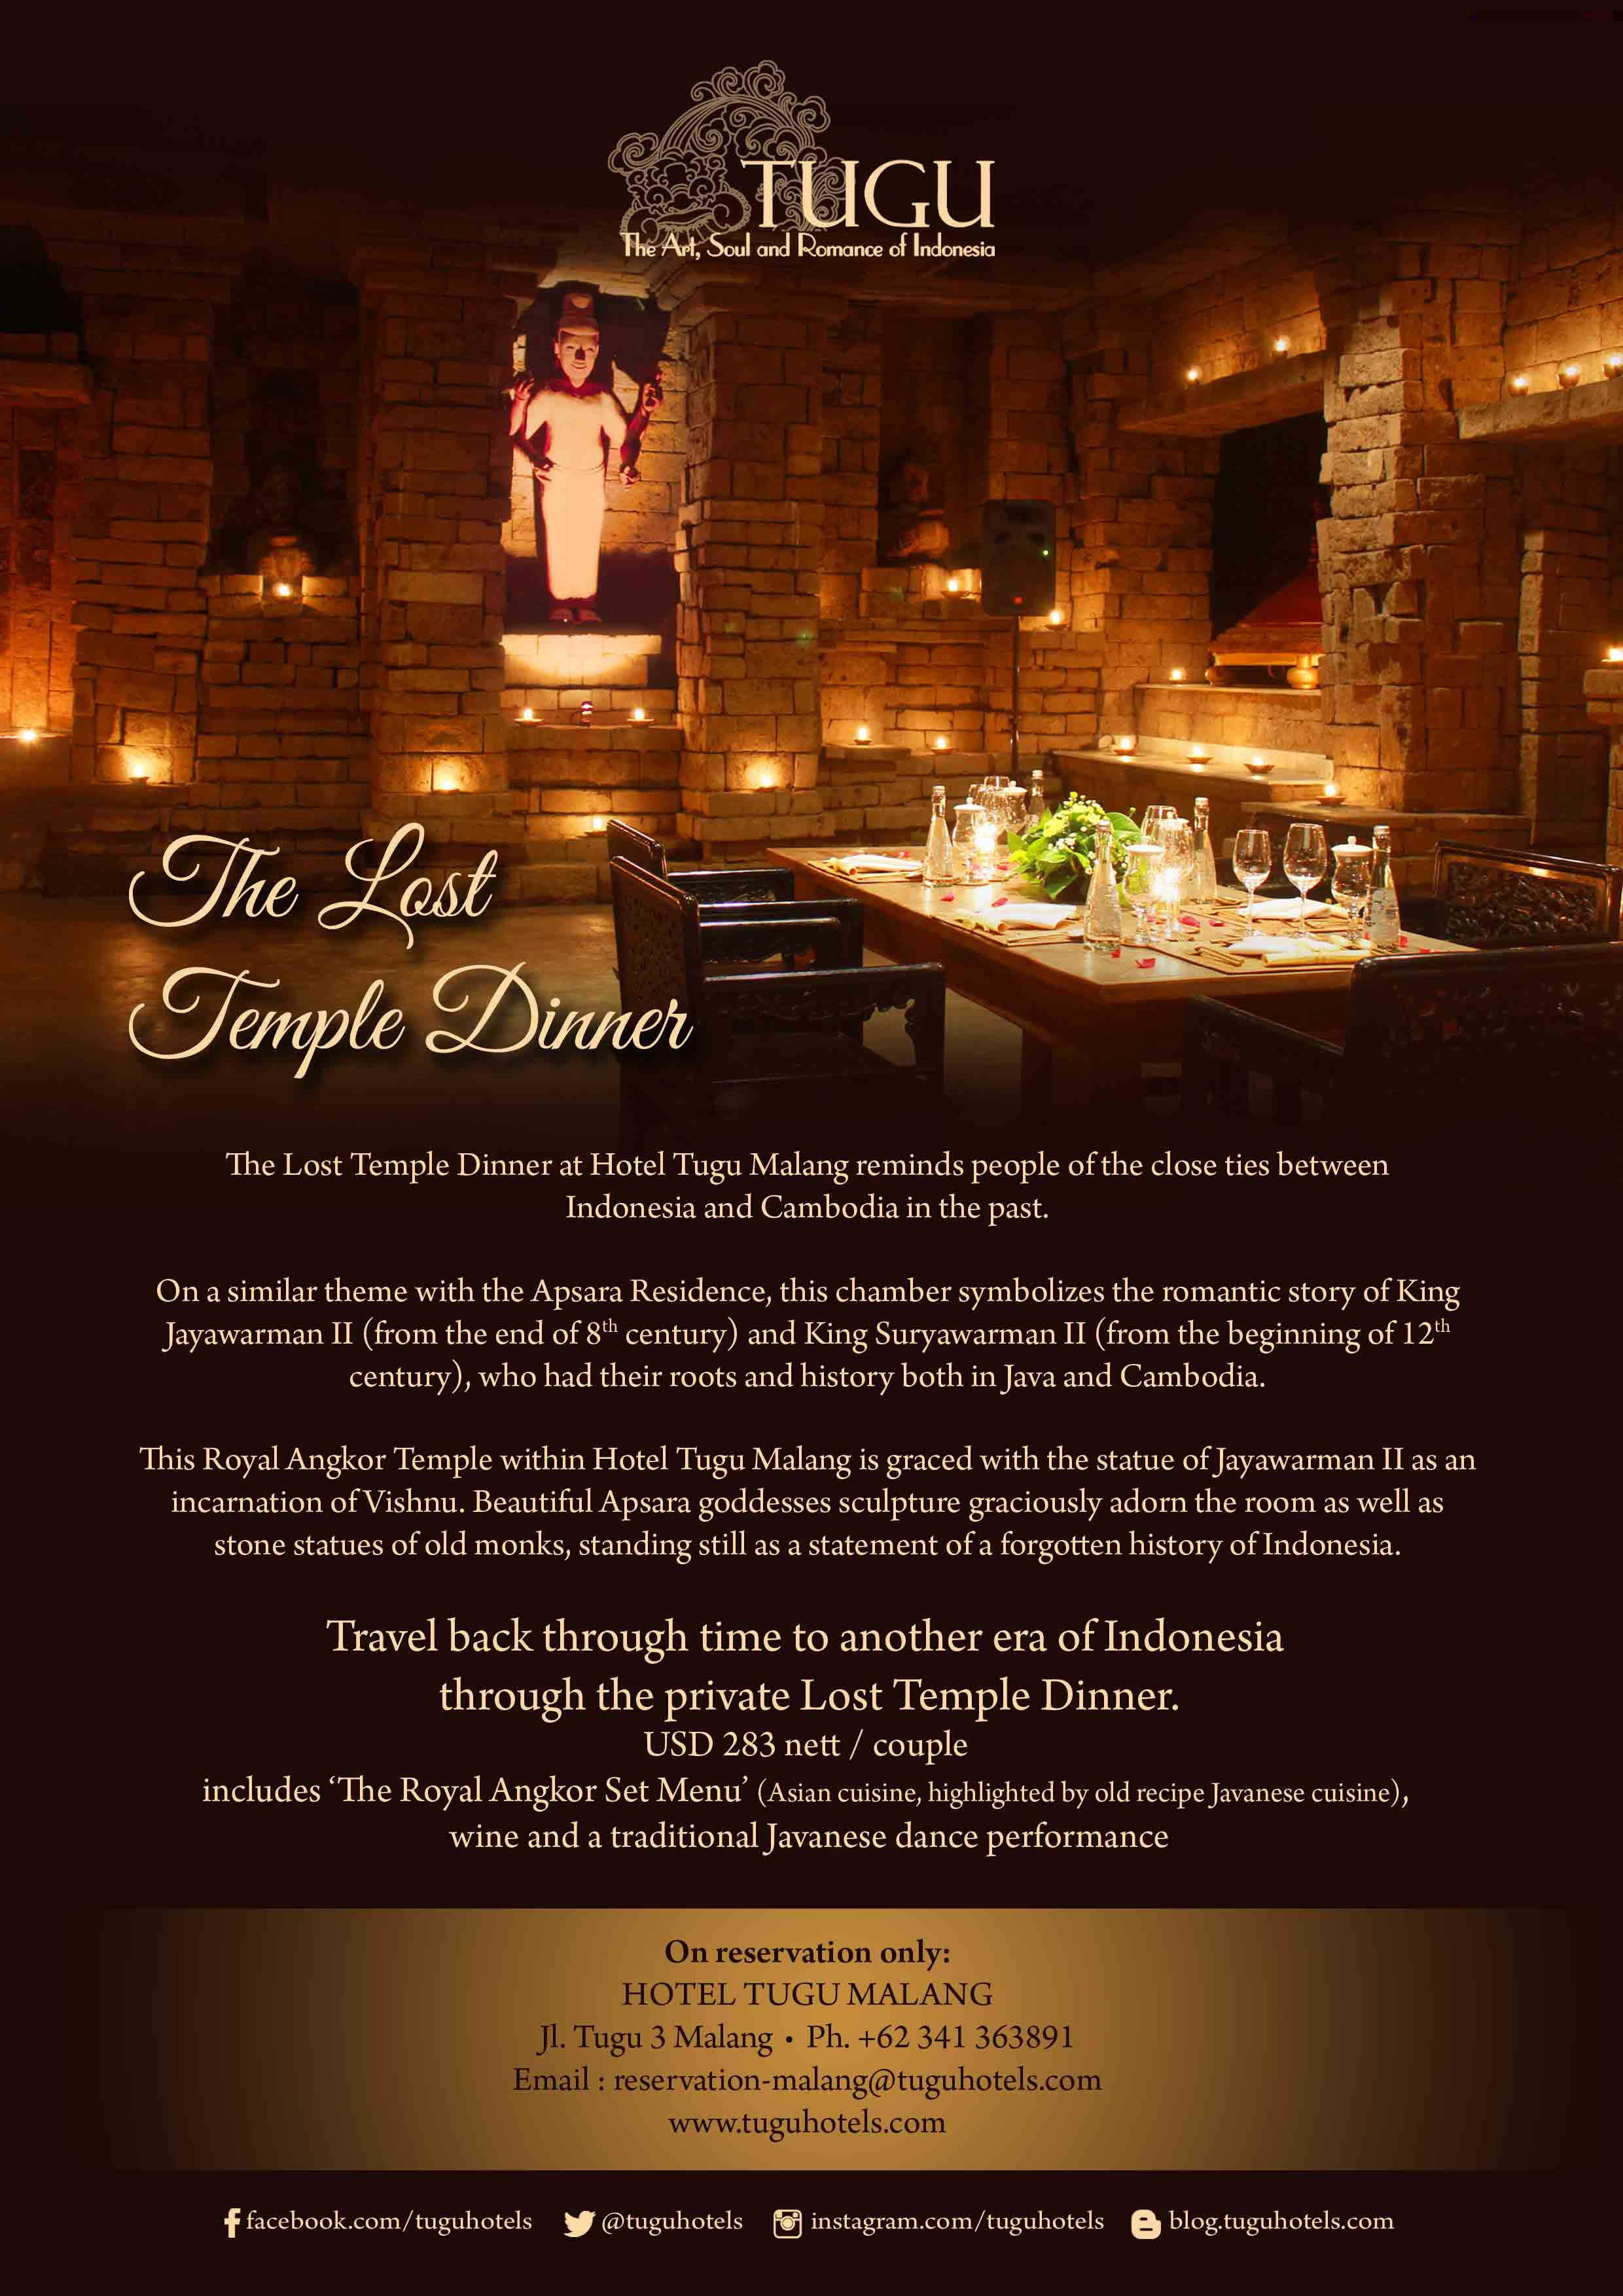 The Lost Temple Dinner - Hotel Tugu Malang